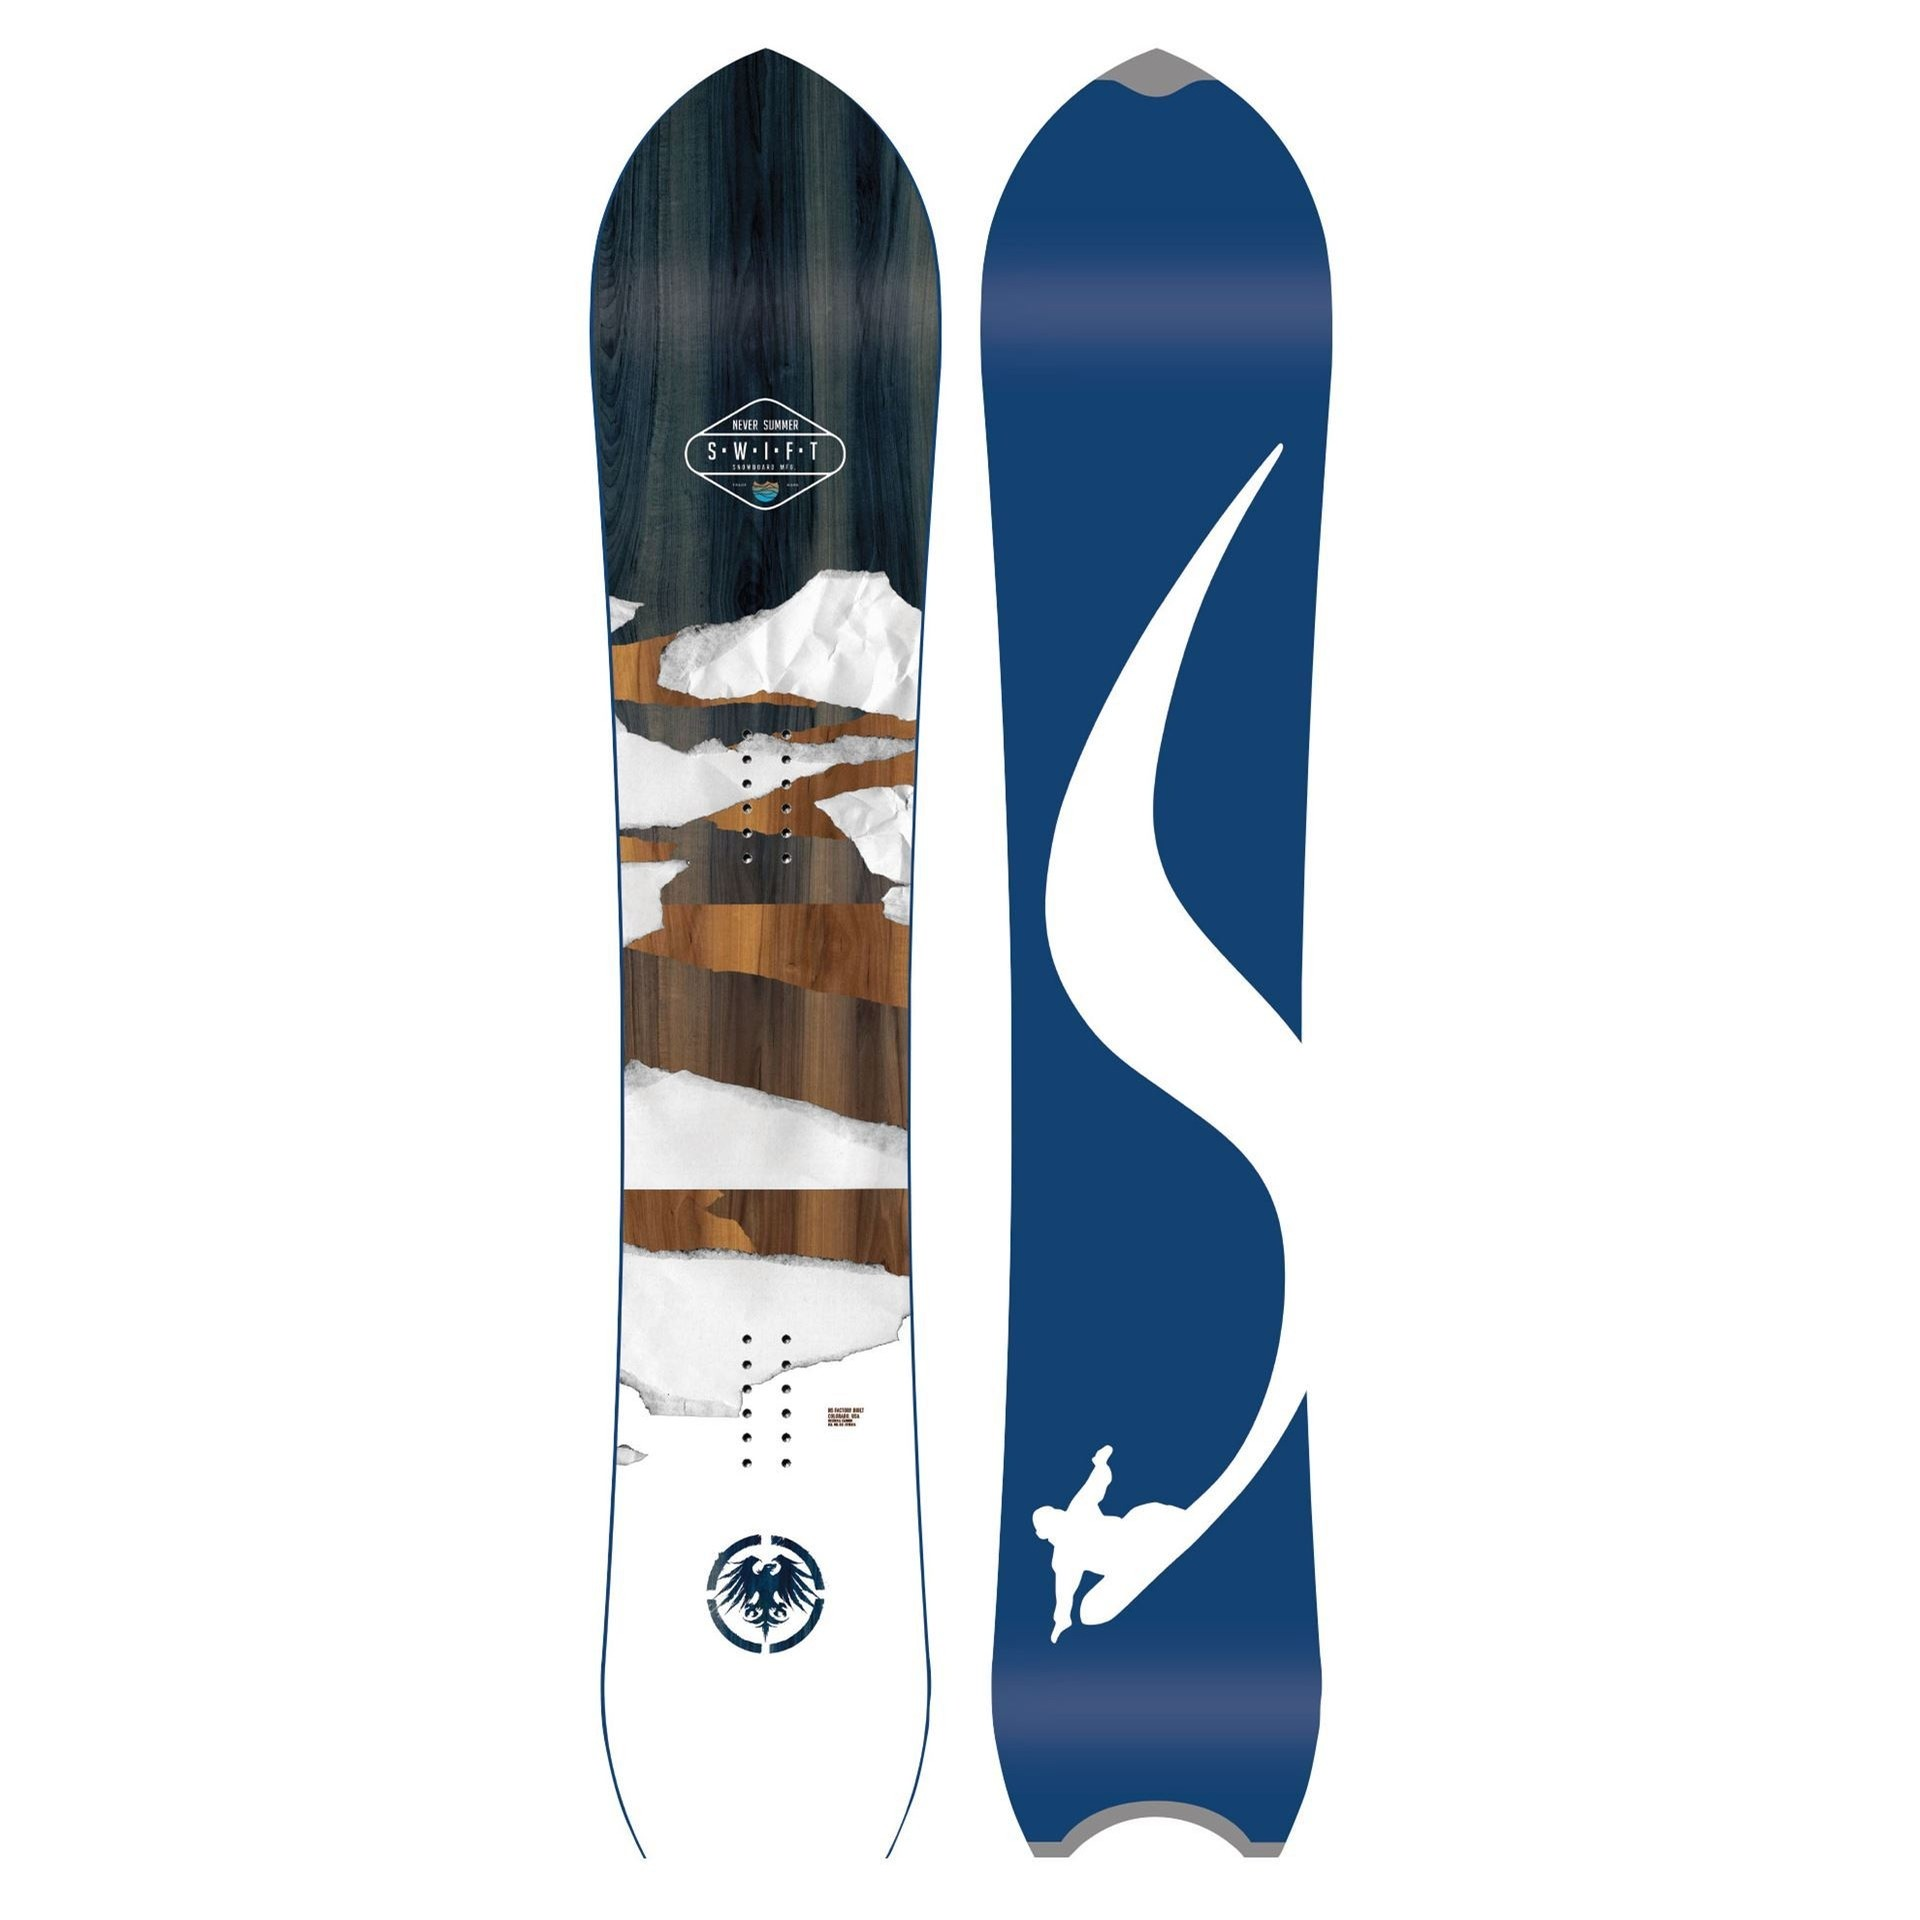 Swift Snowboard (2019-20)